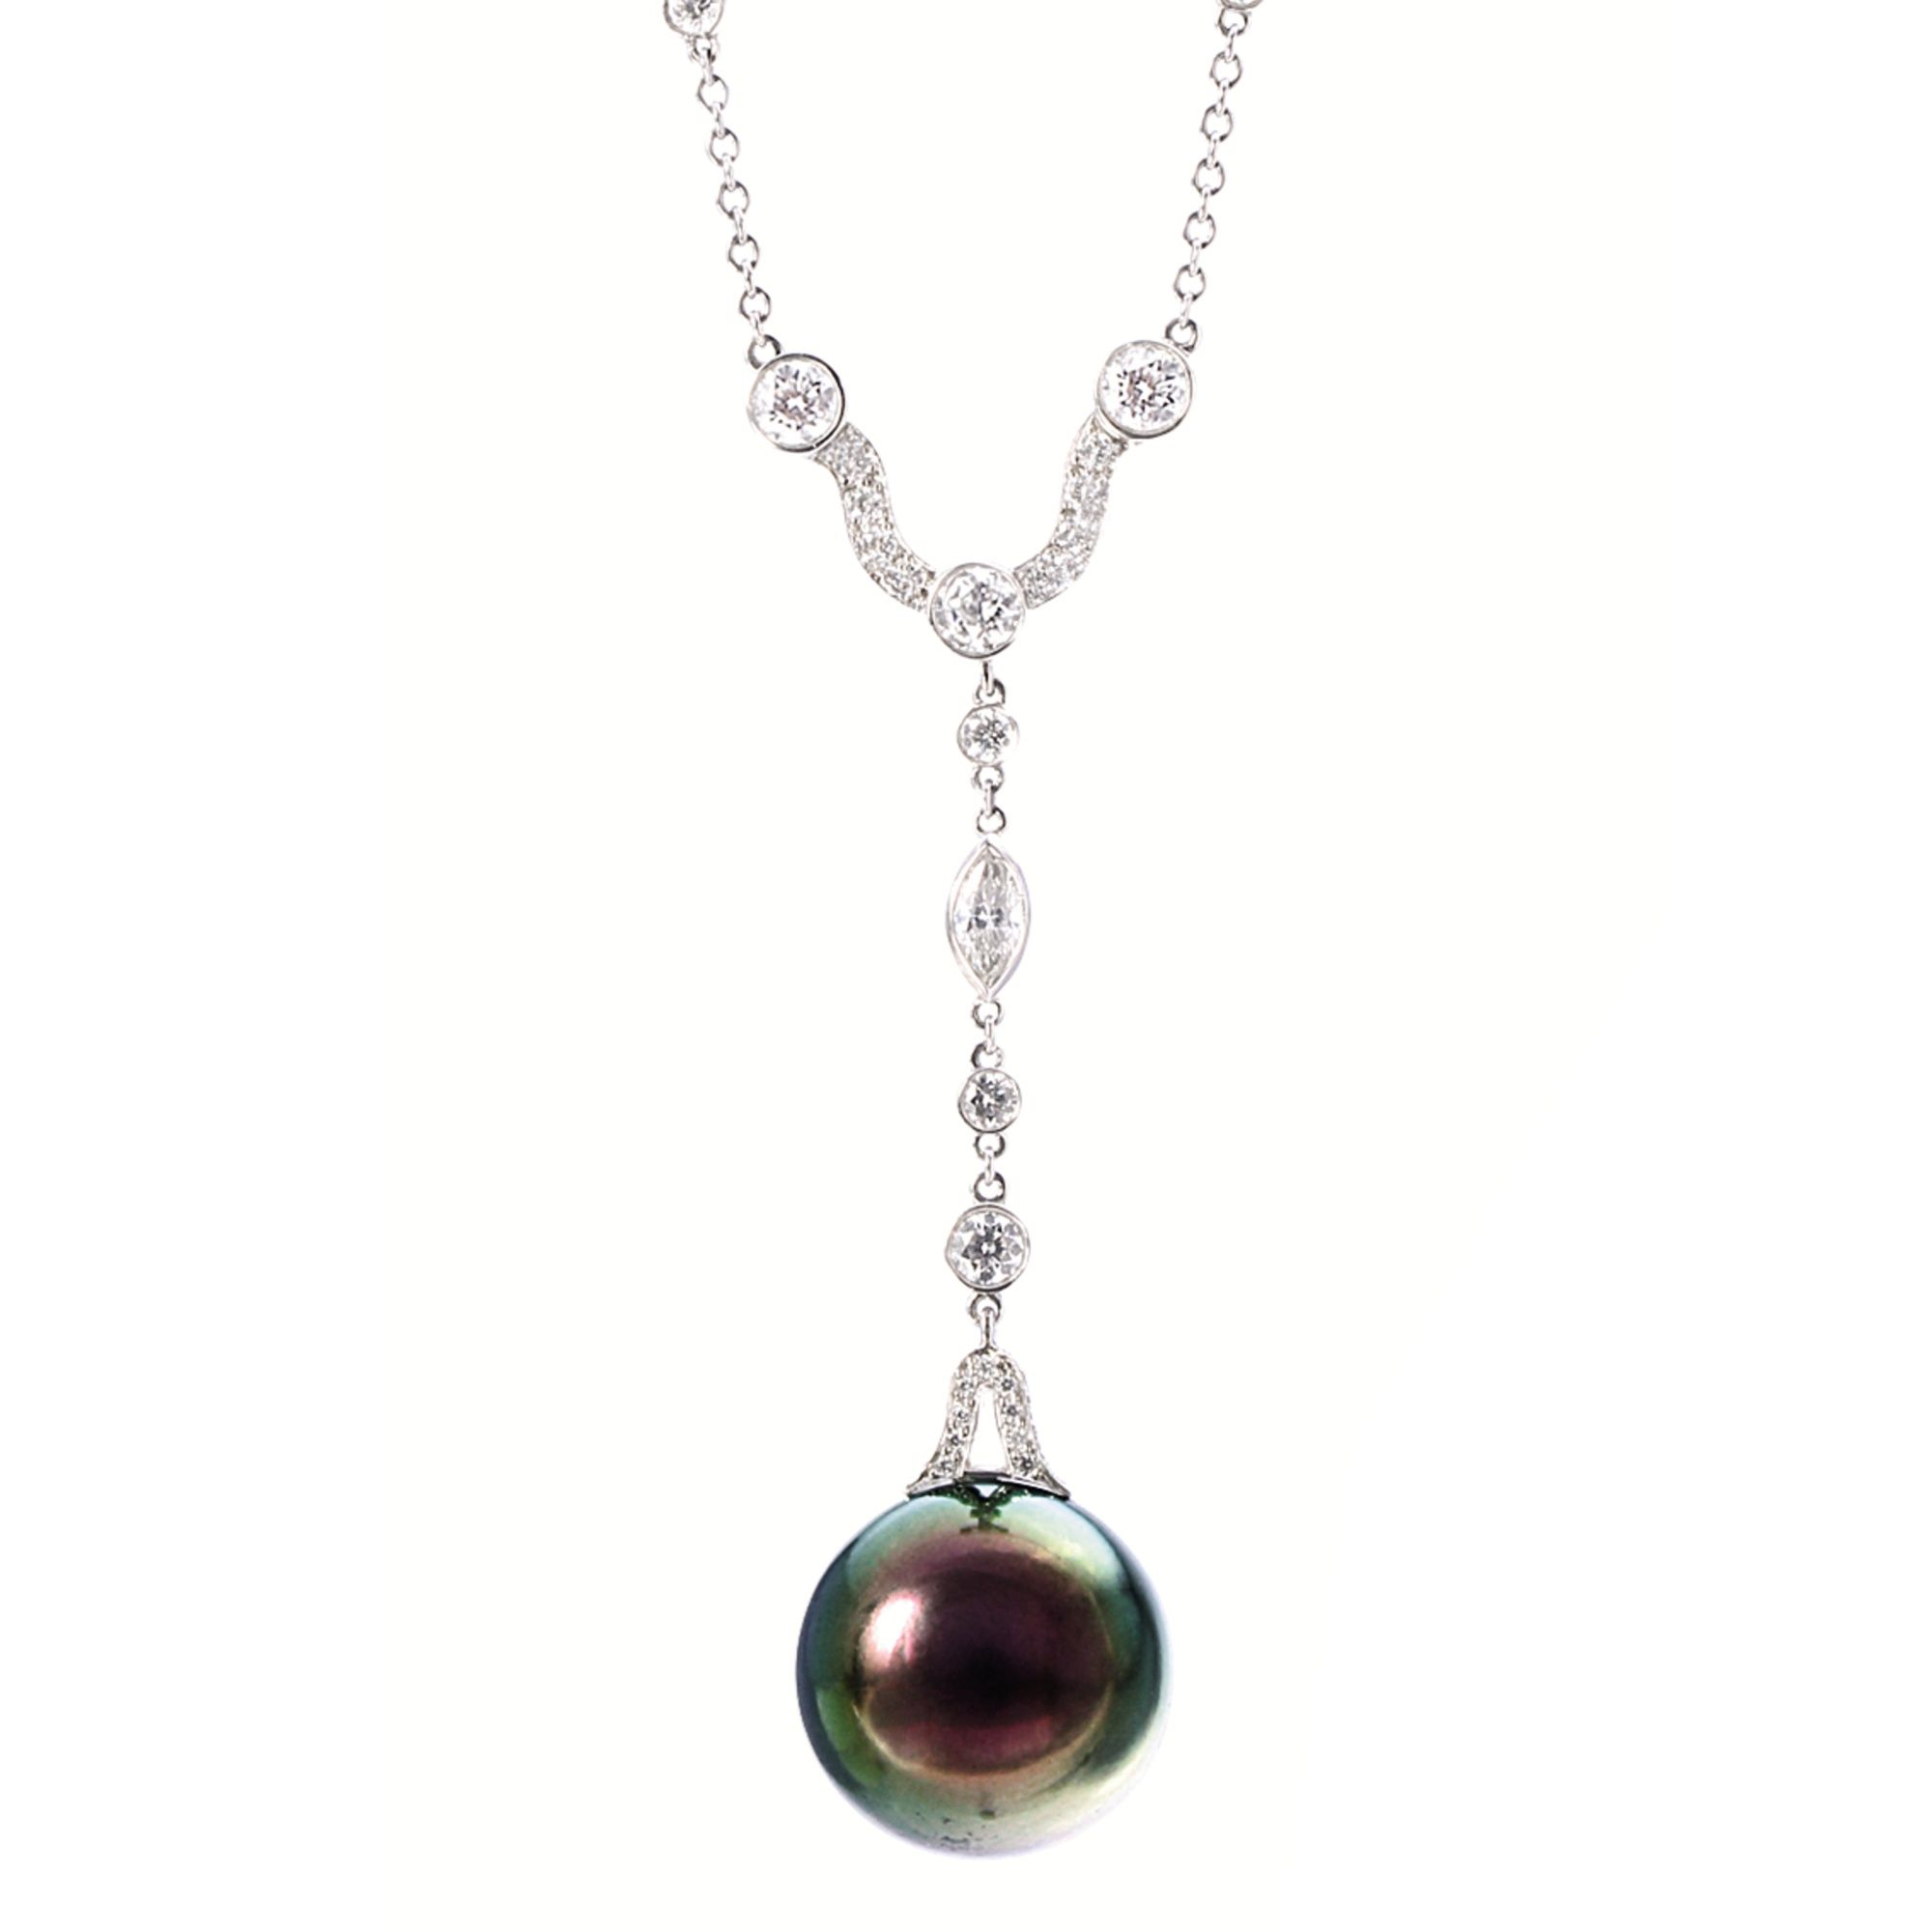 Cultured pearl and diamond pendant necklace tiffany co cultured pearl and diamond pendant necklace tiffany co suspending a cultured pearl measuring aloadofball Gallery